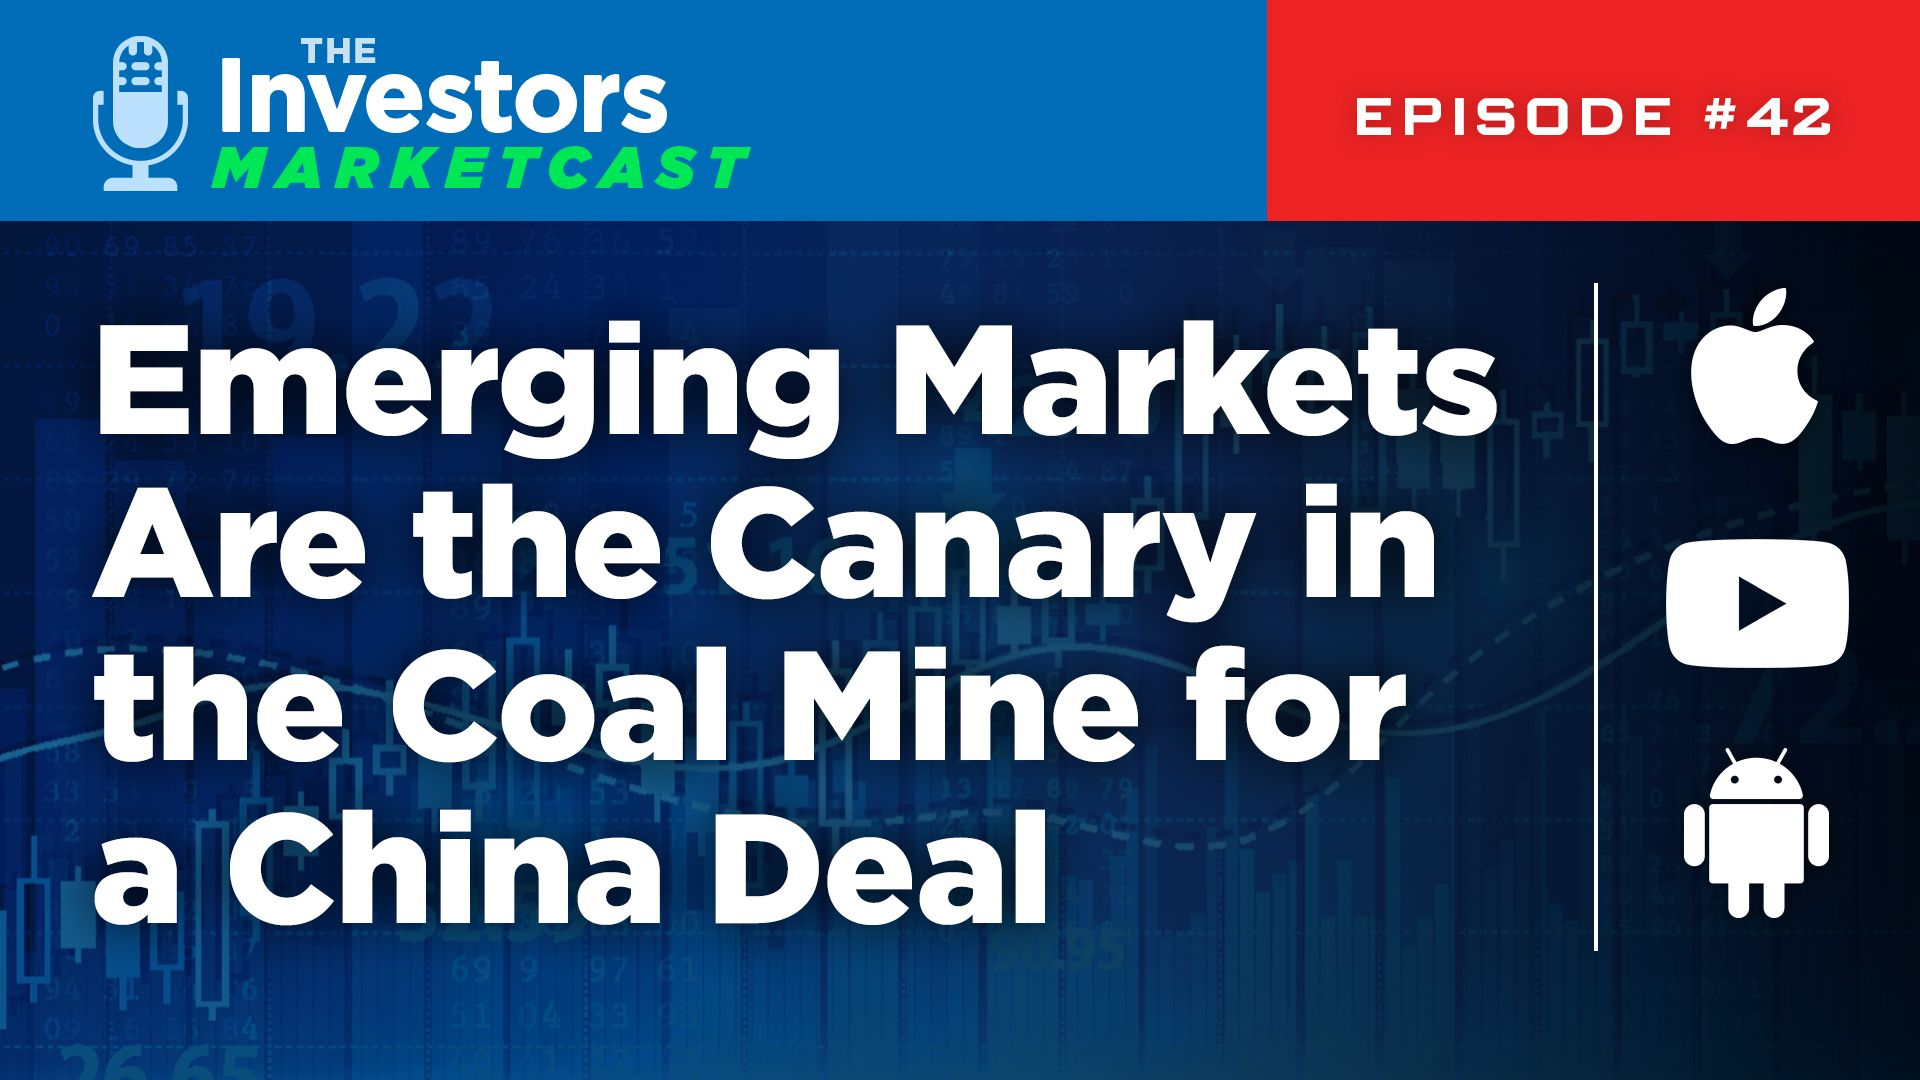 Emerging Markets are the canary in the coal mine for a China deal.